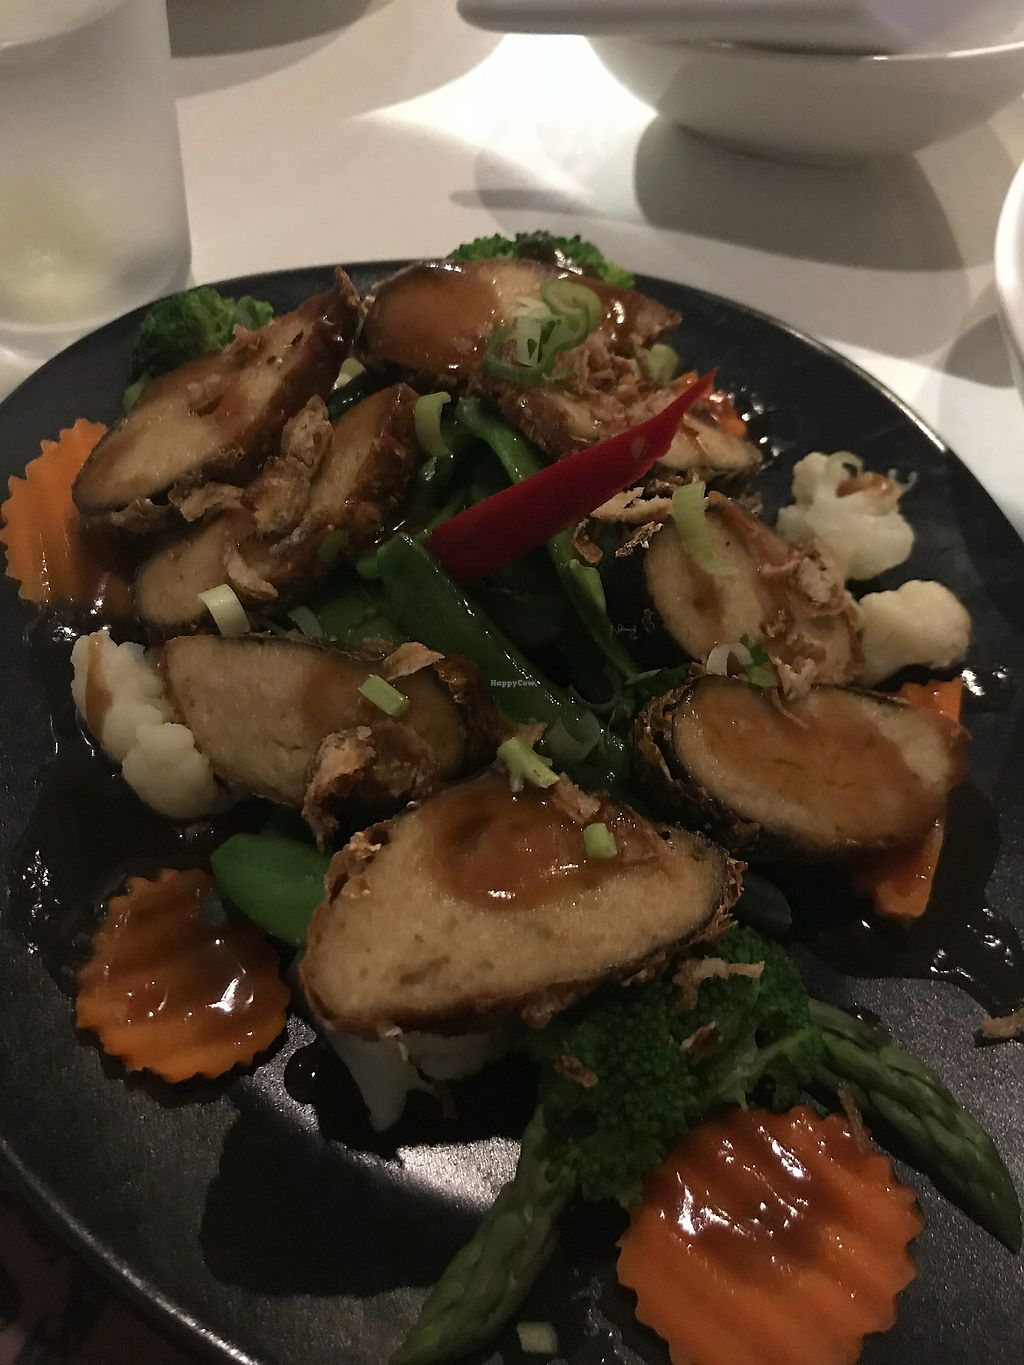 """Photo of Kindness Cafe  by <a href=""""/members/profile/LolaNachtigall"""">LolaNachtigall</a> <br/>Seaweed Tofu <br/> April 8, 2018  - <a href='/contact/abuse/image/75597/382376'>Report</a>"""